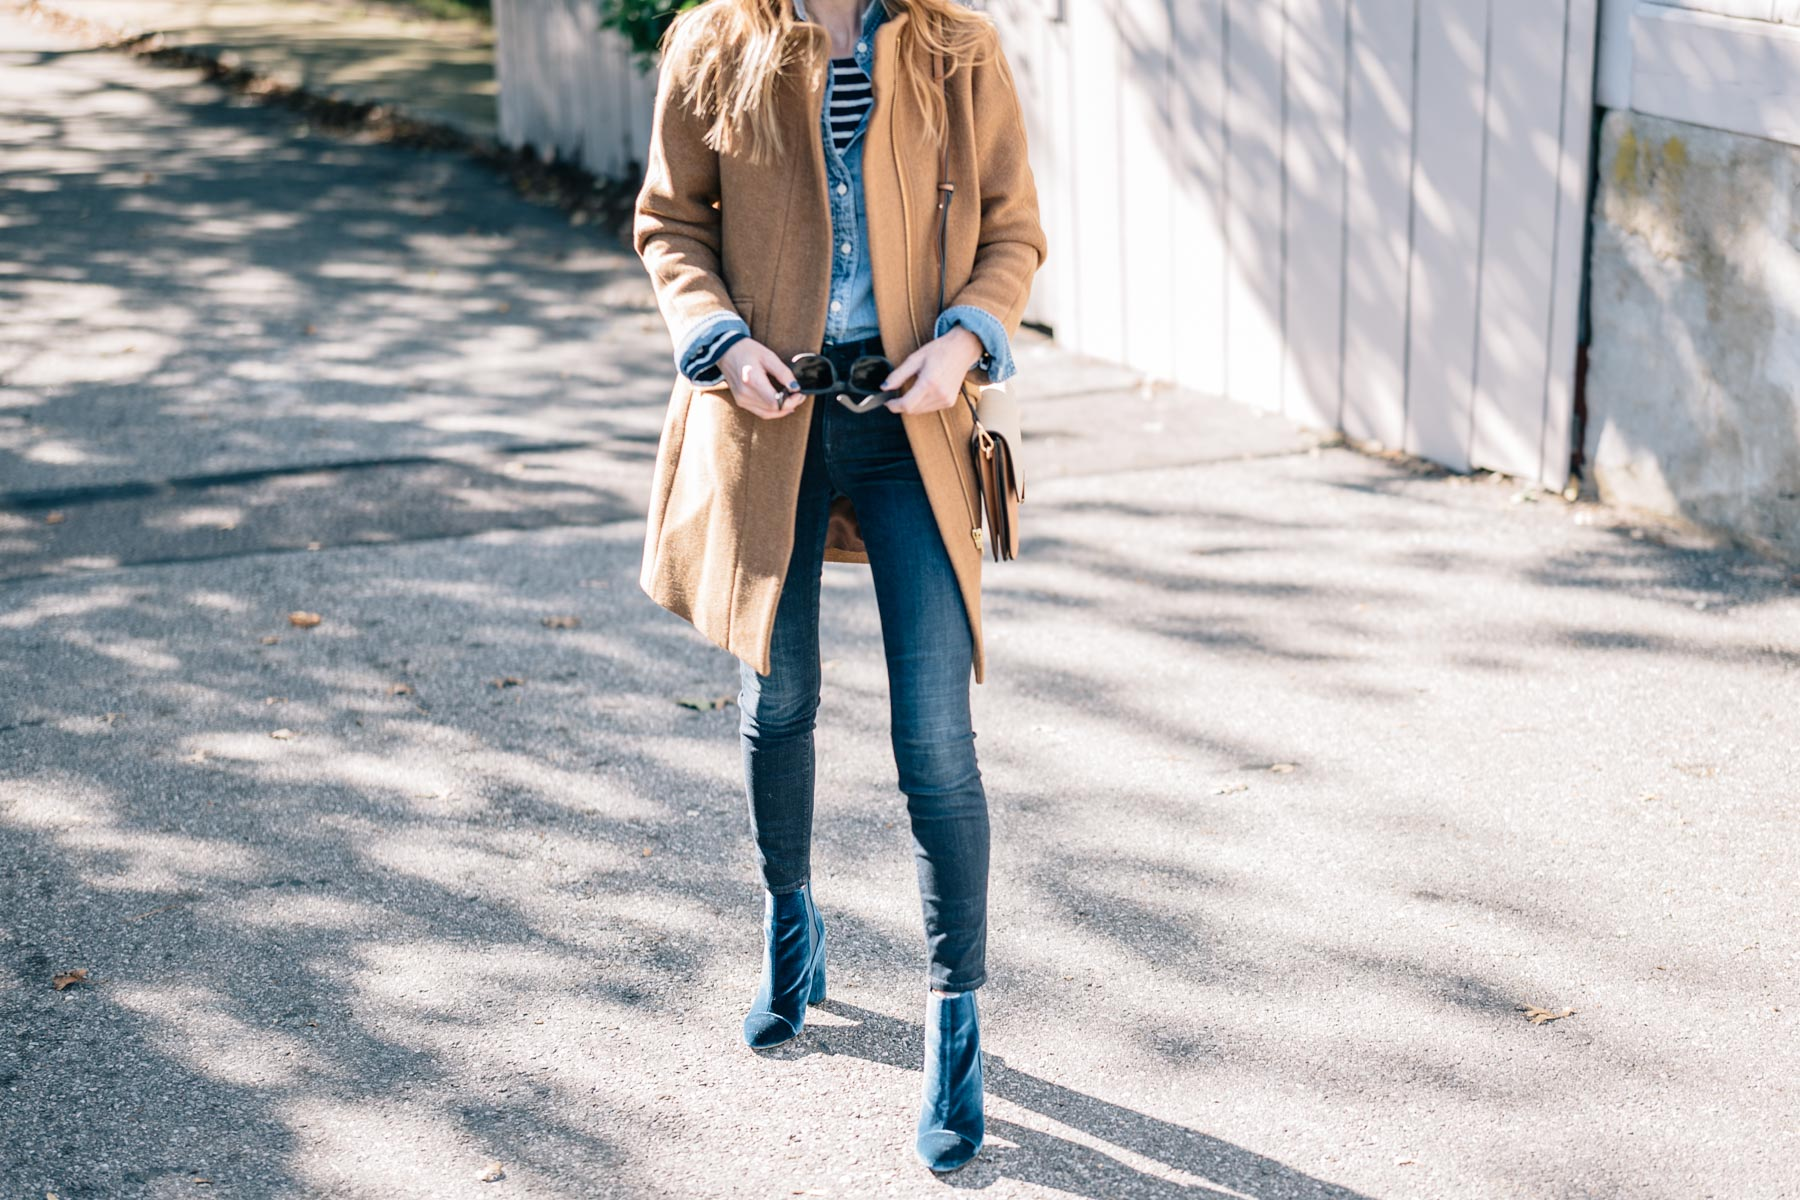 Jess Ann Kirby wears the J.Crew Camel Wool Coat, AYR Jeans and Velvet Booties for a warm fall look